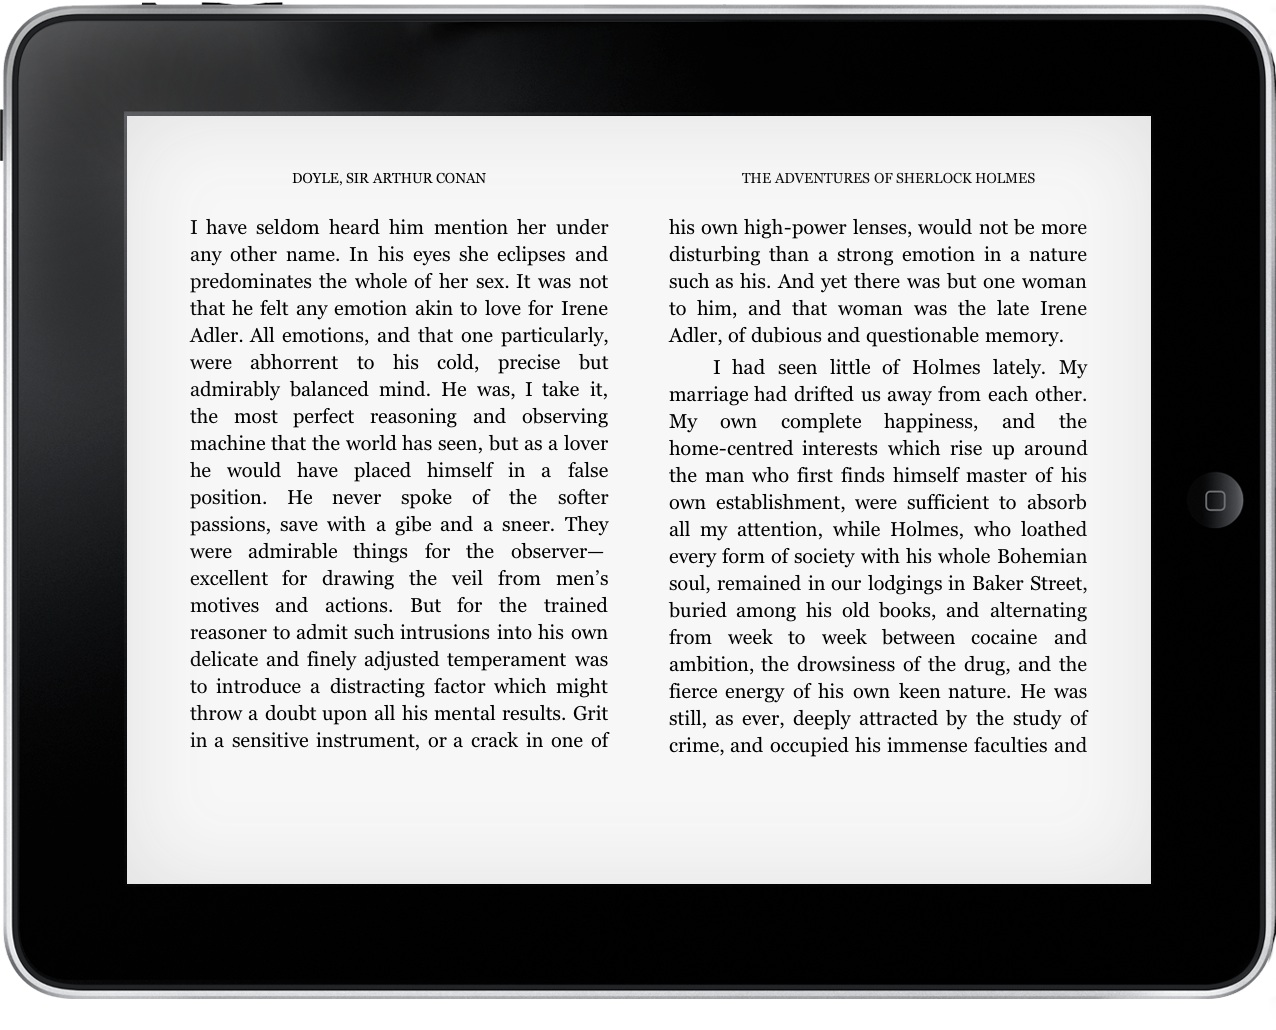 Amazon Kindle app now comes with cheat sheets and landscape view